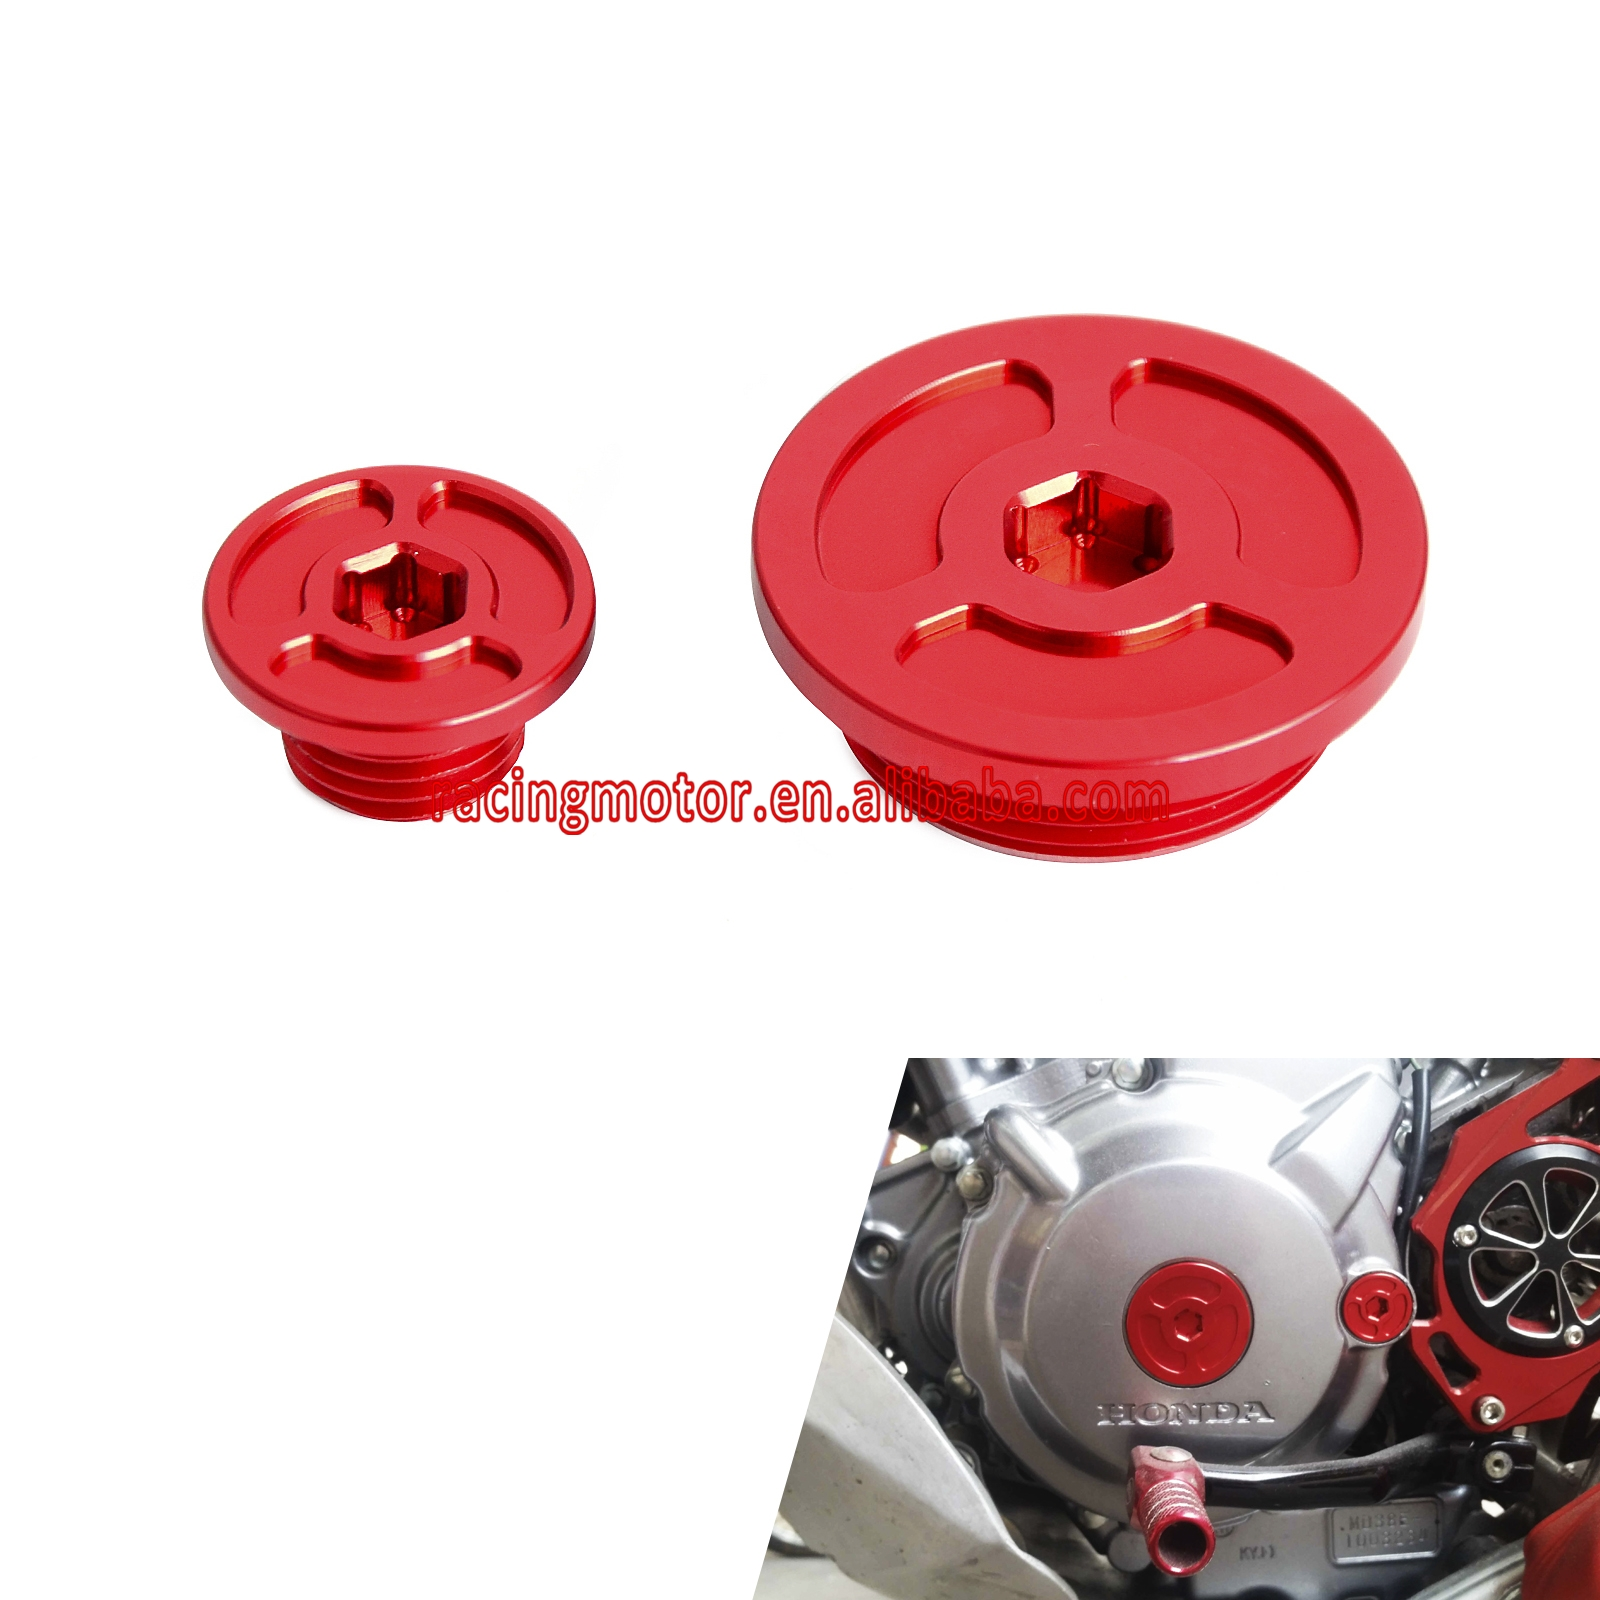 Billet Red Engine Timing Plugs Bolts For Honda CRF250L CRF250M 2012 - 2015 2013 2014 CRF250 L M billet rear hub carriers for losi 5ive t